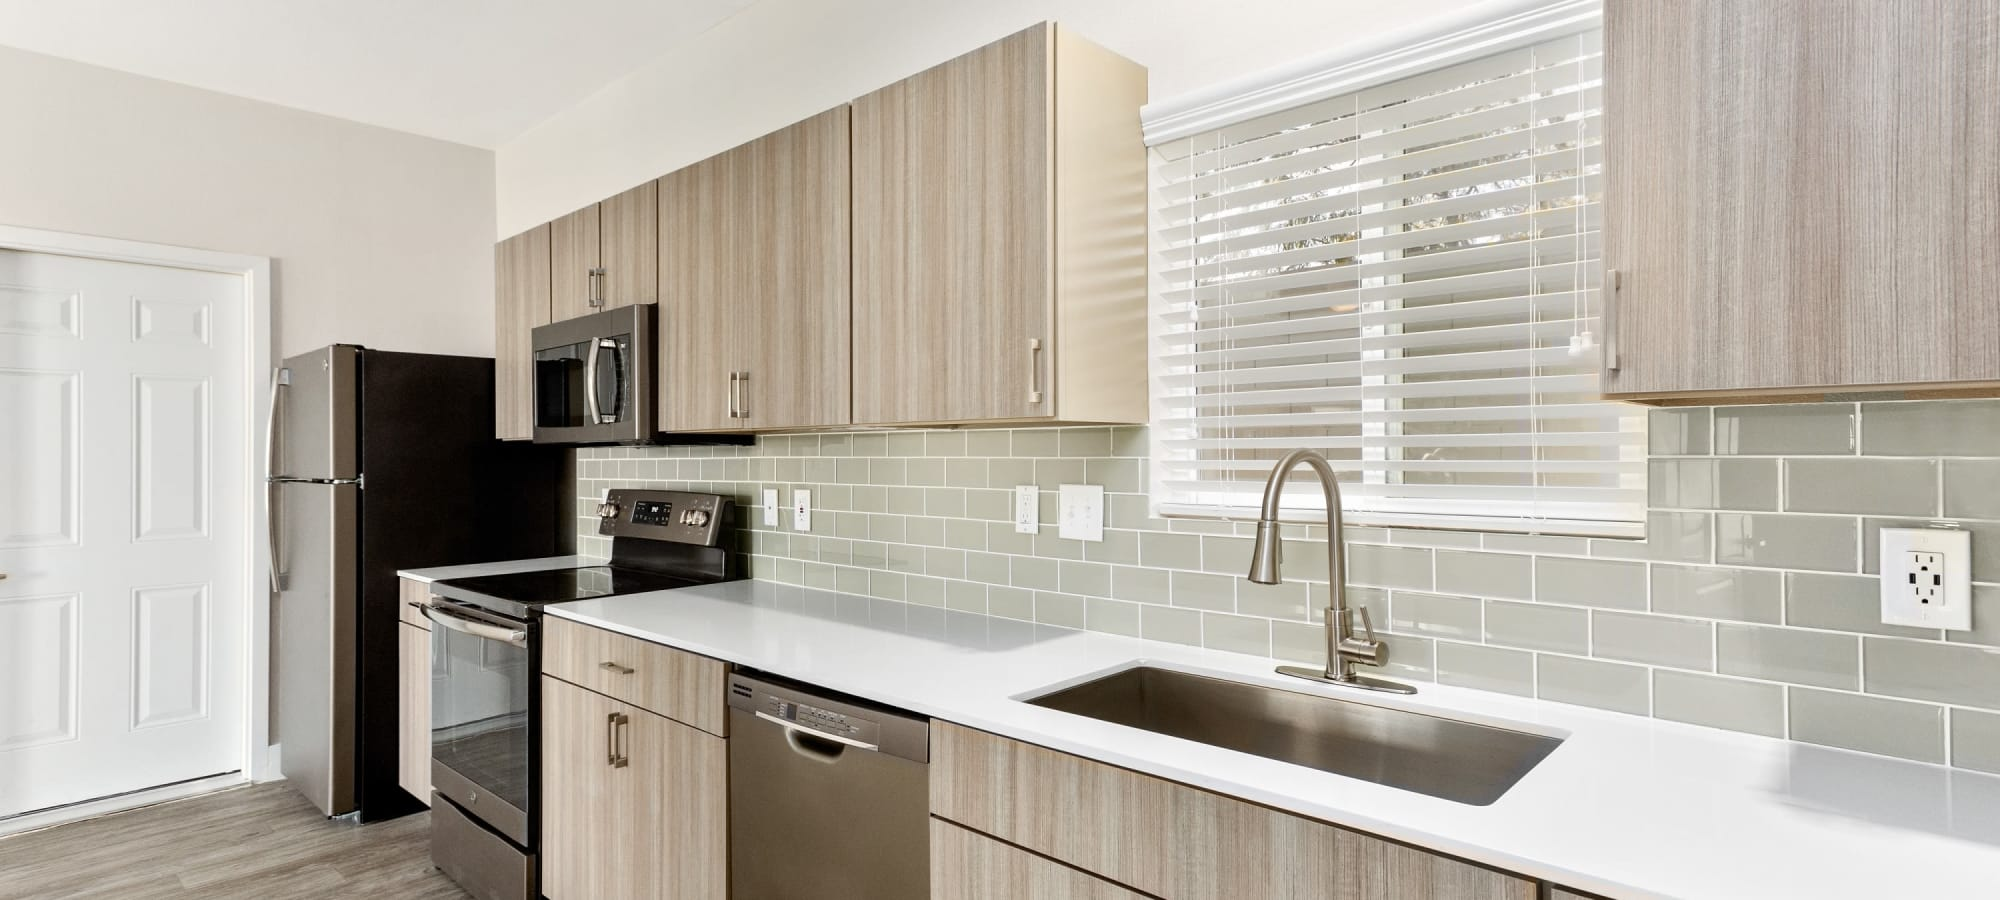 Kitchen with stainless-steel appliances at The Sterling in Gilbert, Arizona